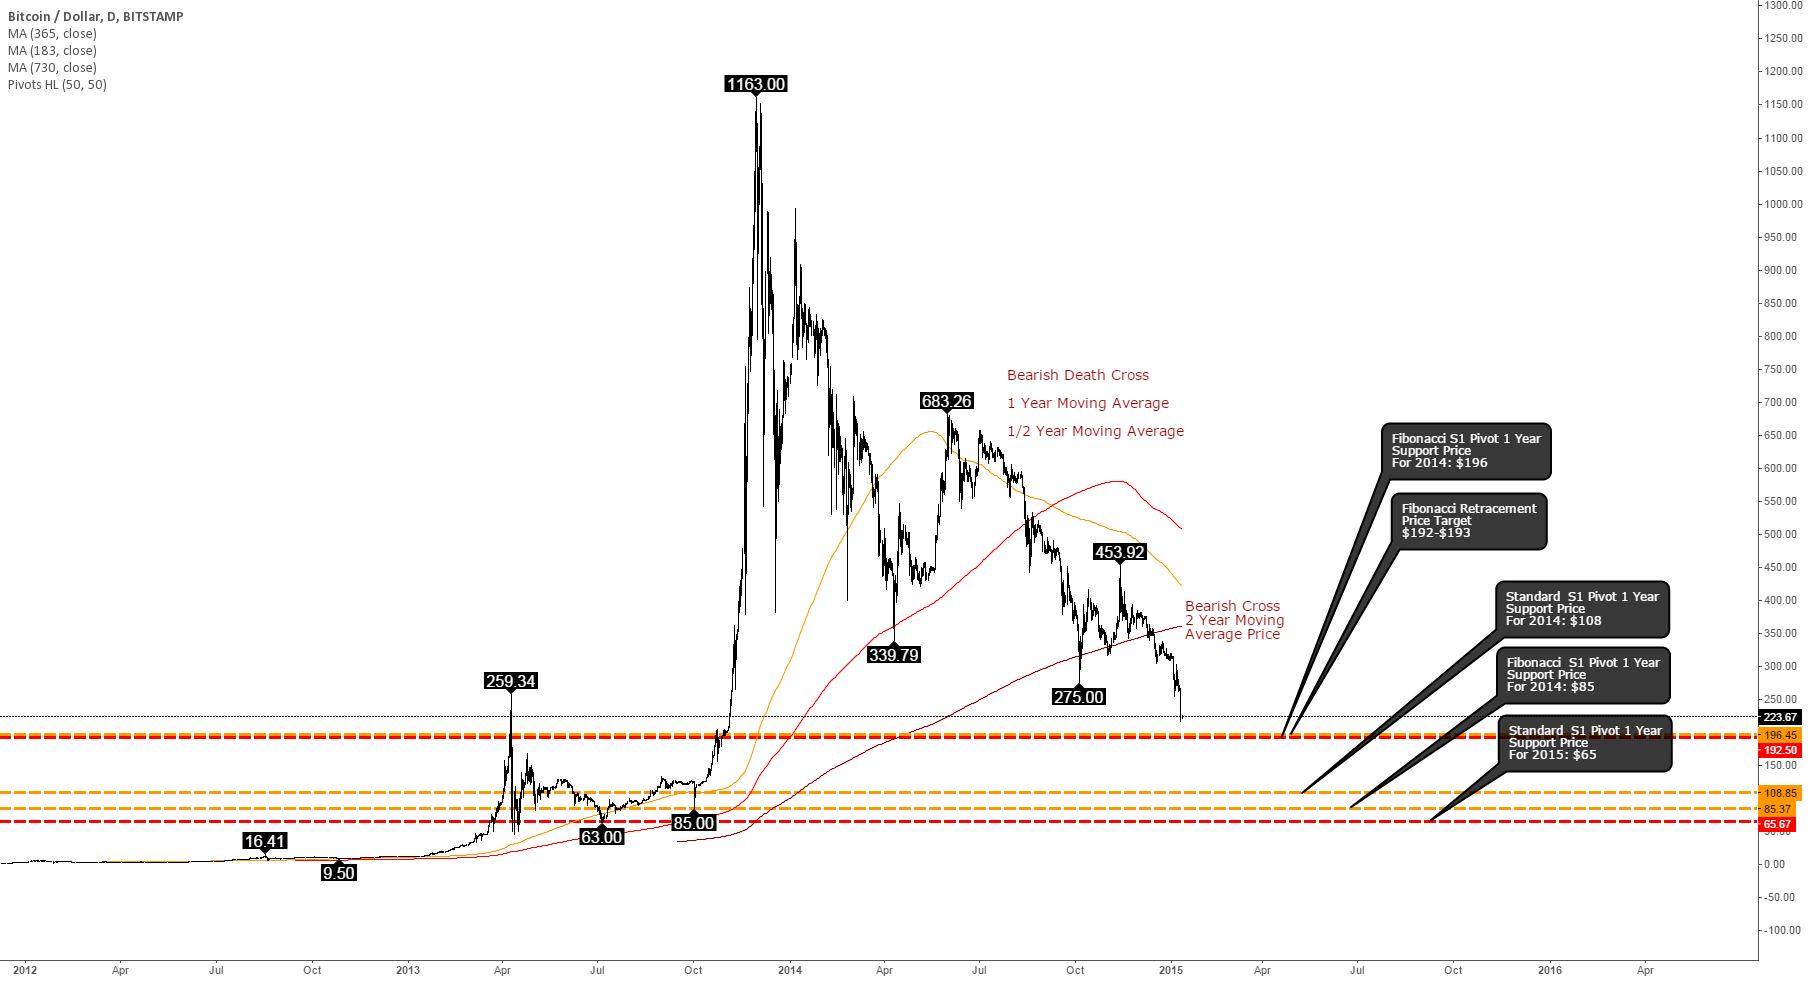 Next Bitcoin price support is at $192-$196